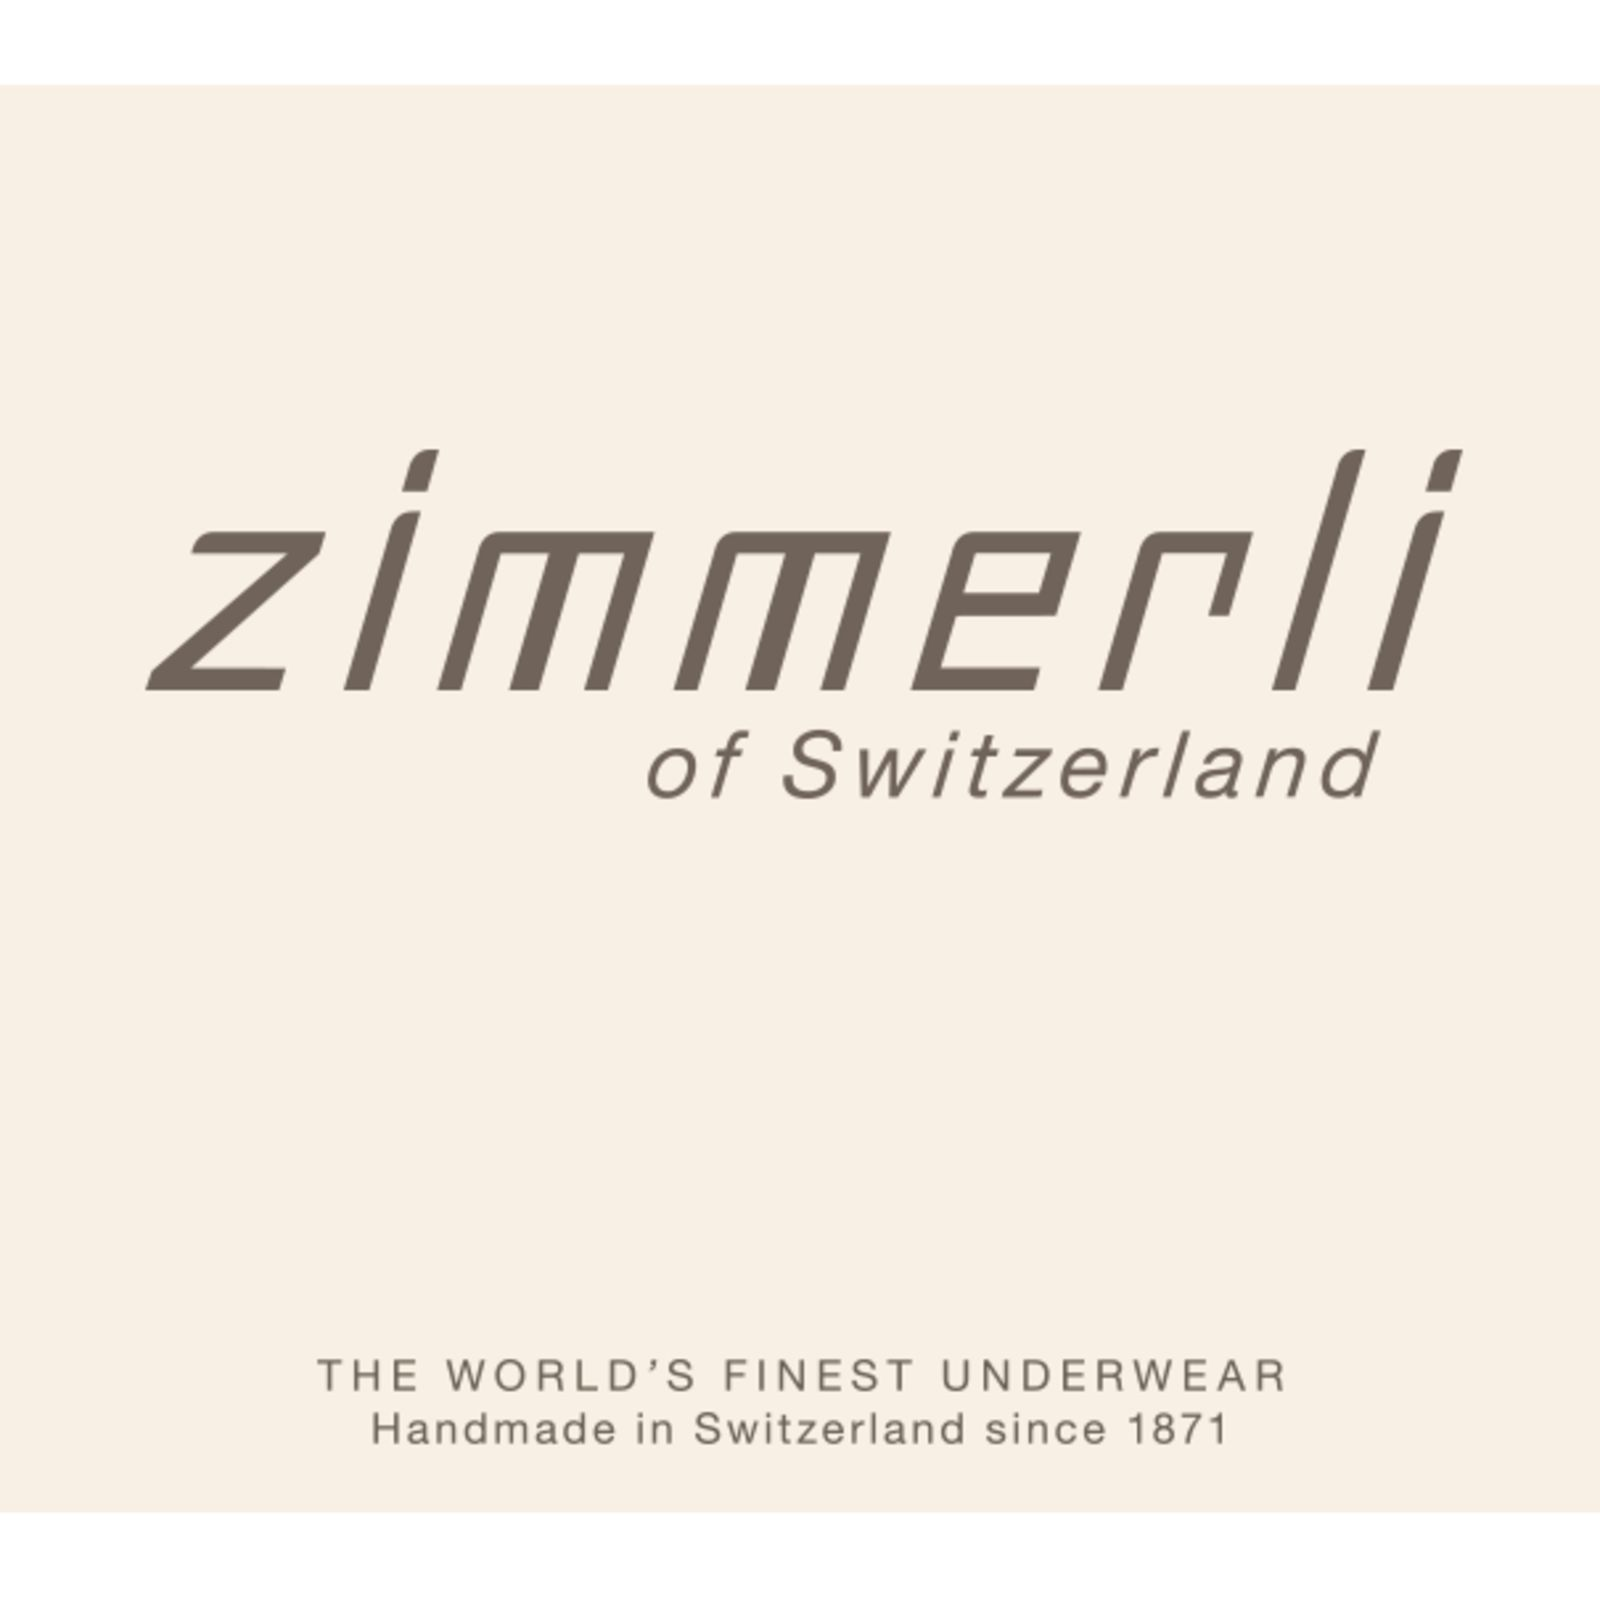 Zimmerli of Switzerland (Image 1)